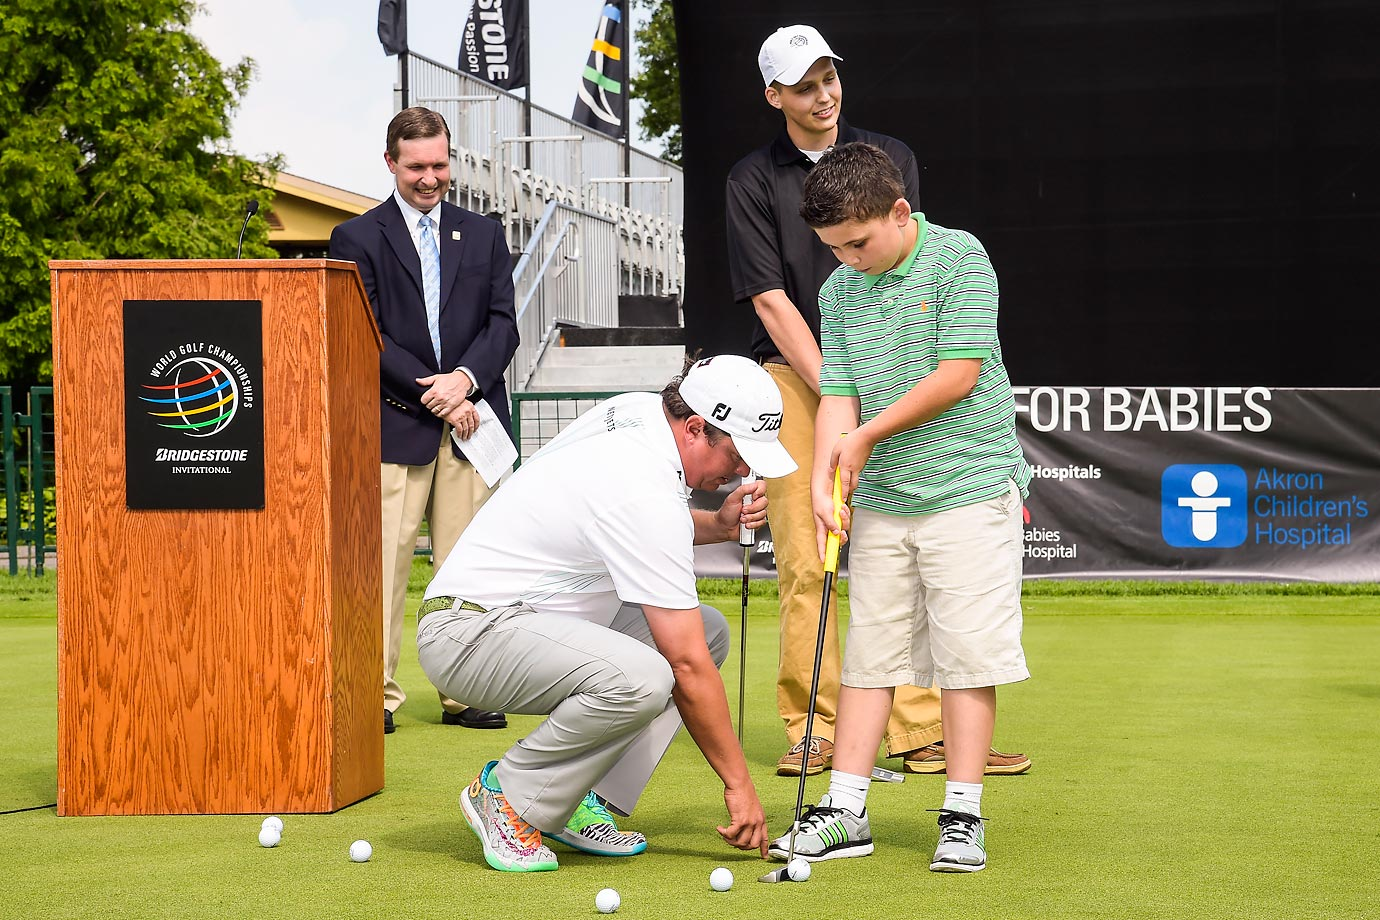 Golfer Jason Dufner participates in a press conference announcing Akron Children's Hospital and University Hospitals Rainbow Babies & Children's Hospital as beneficiaries of the World Golf Championships-Bridgestone Invitational.